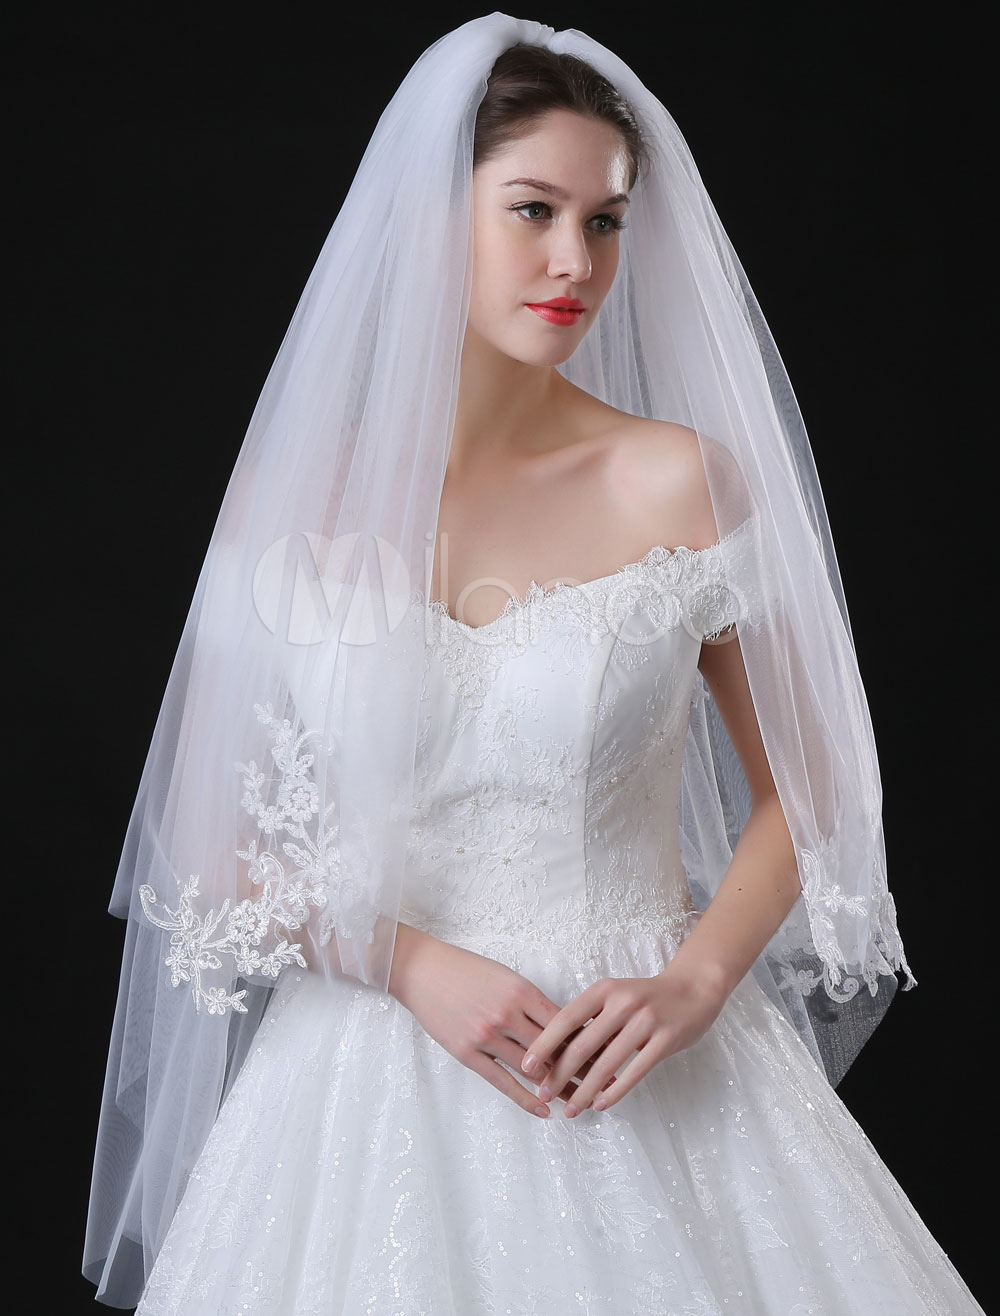 Buy Tulle Wedding Veil Ivory Lace Applique Edge Two Tier Bridal Veil for $15.99 in Milanoo store